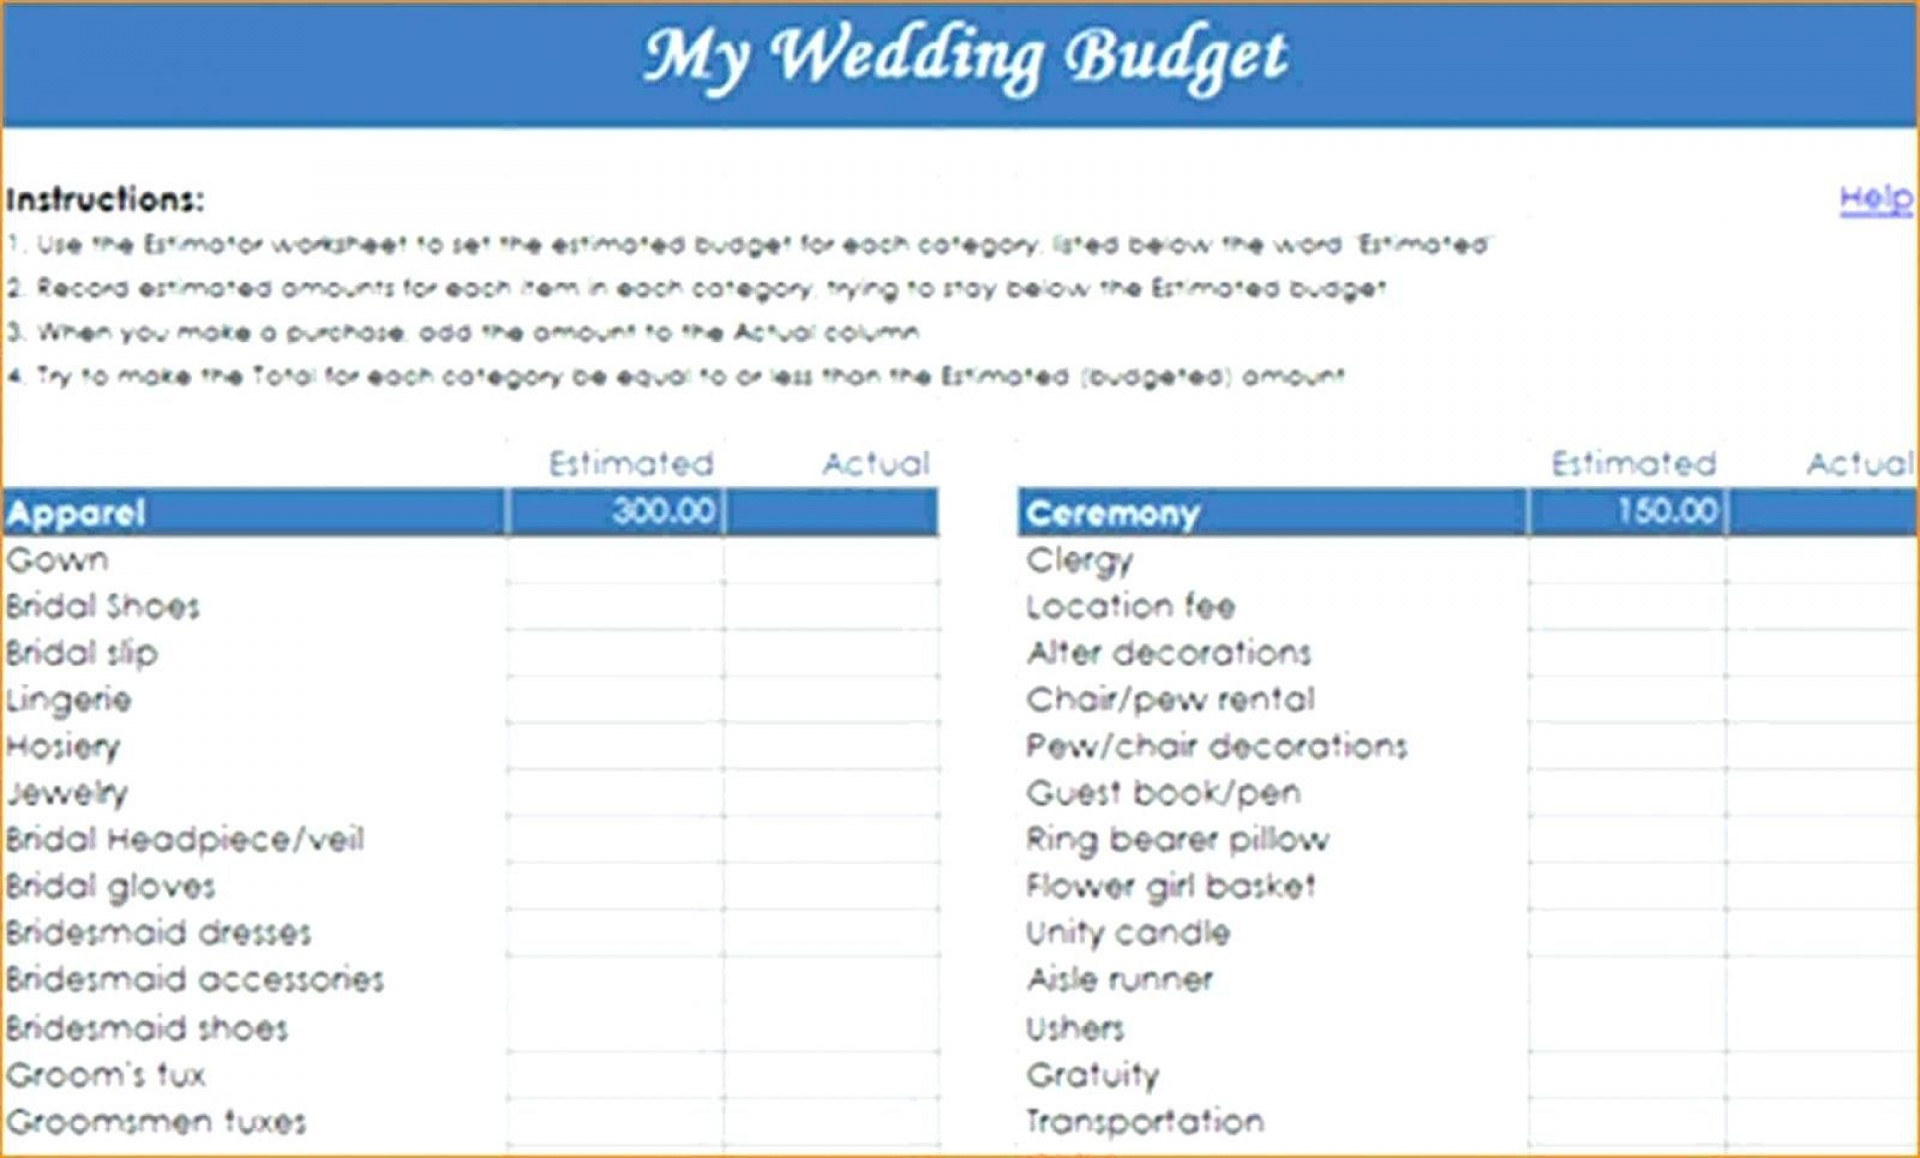 003 Simple Wedding Budget Template Excel High Resolution  South Africa Sample Spreadsheet1920